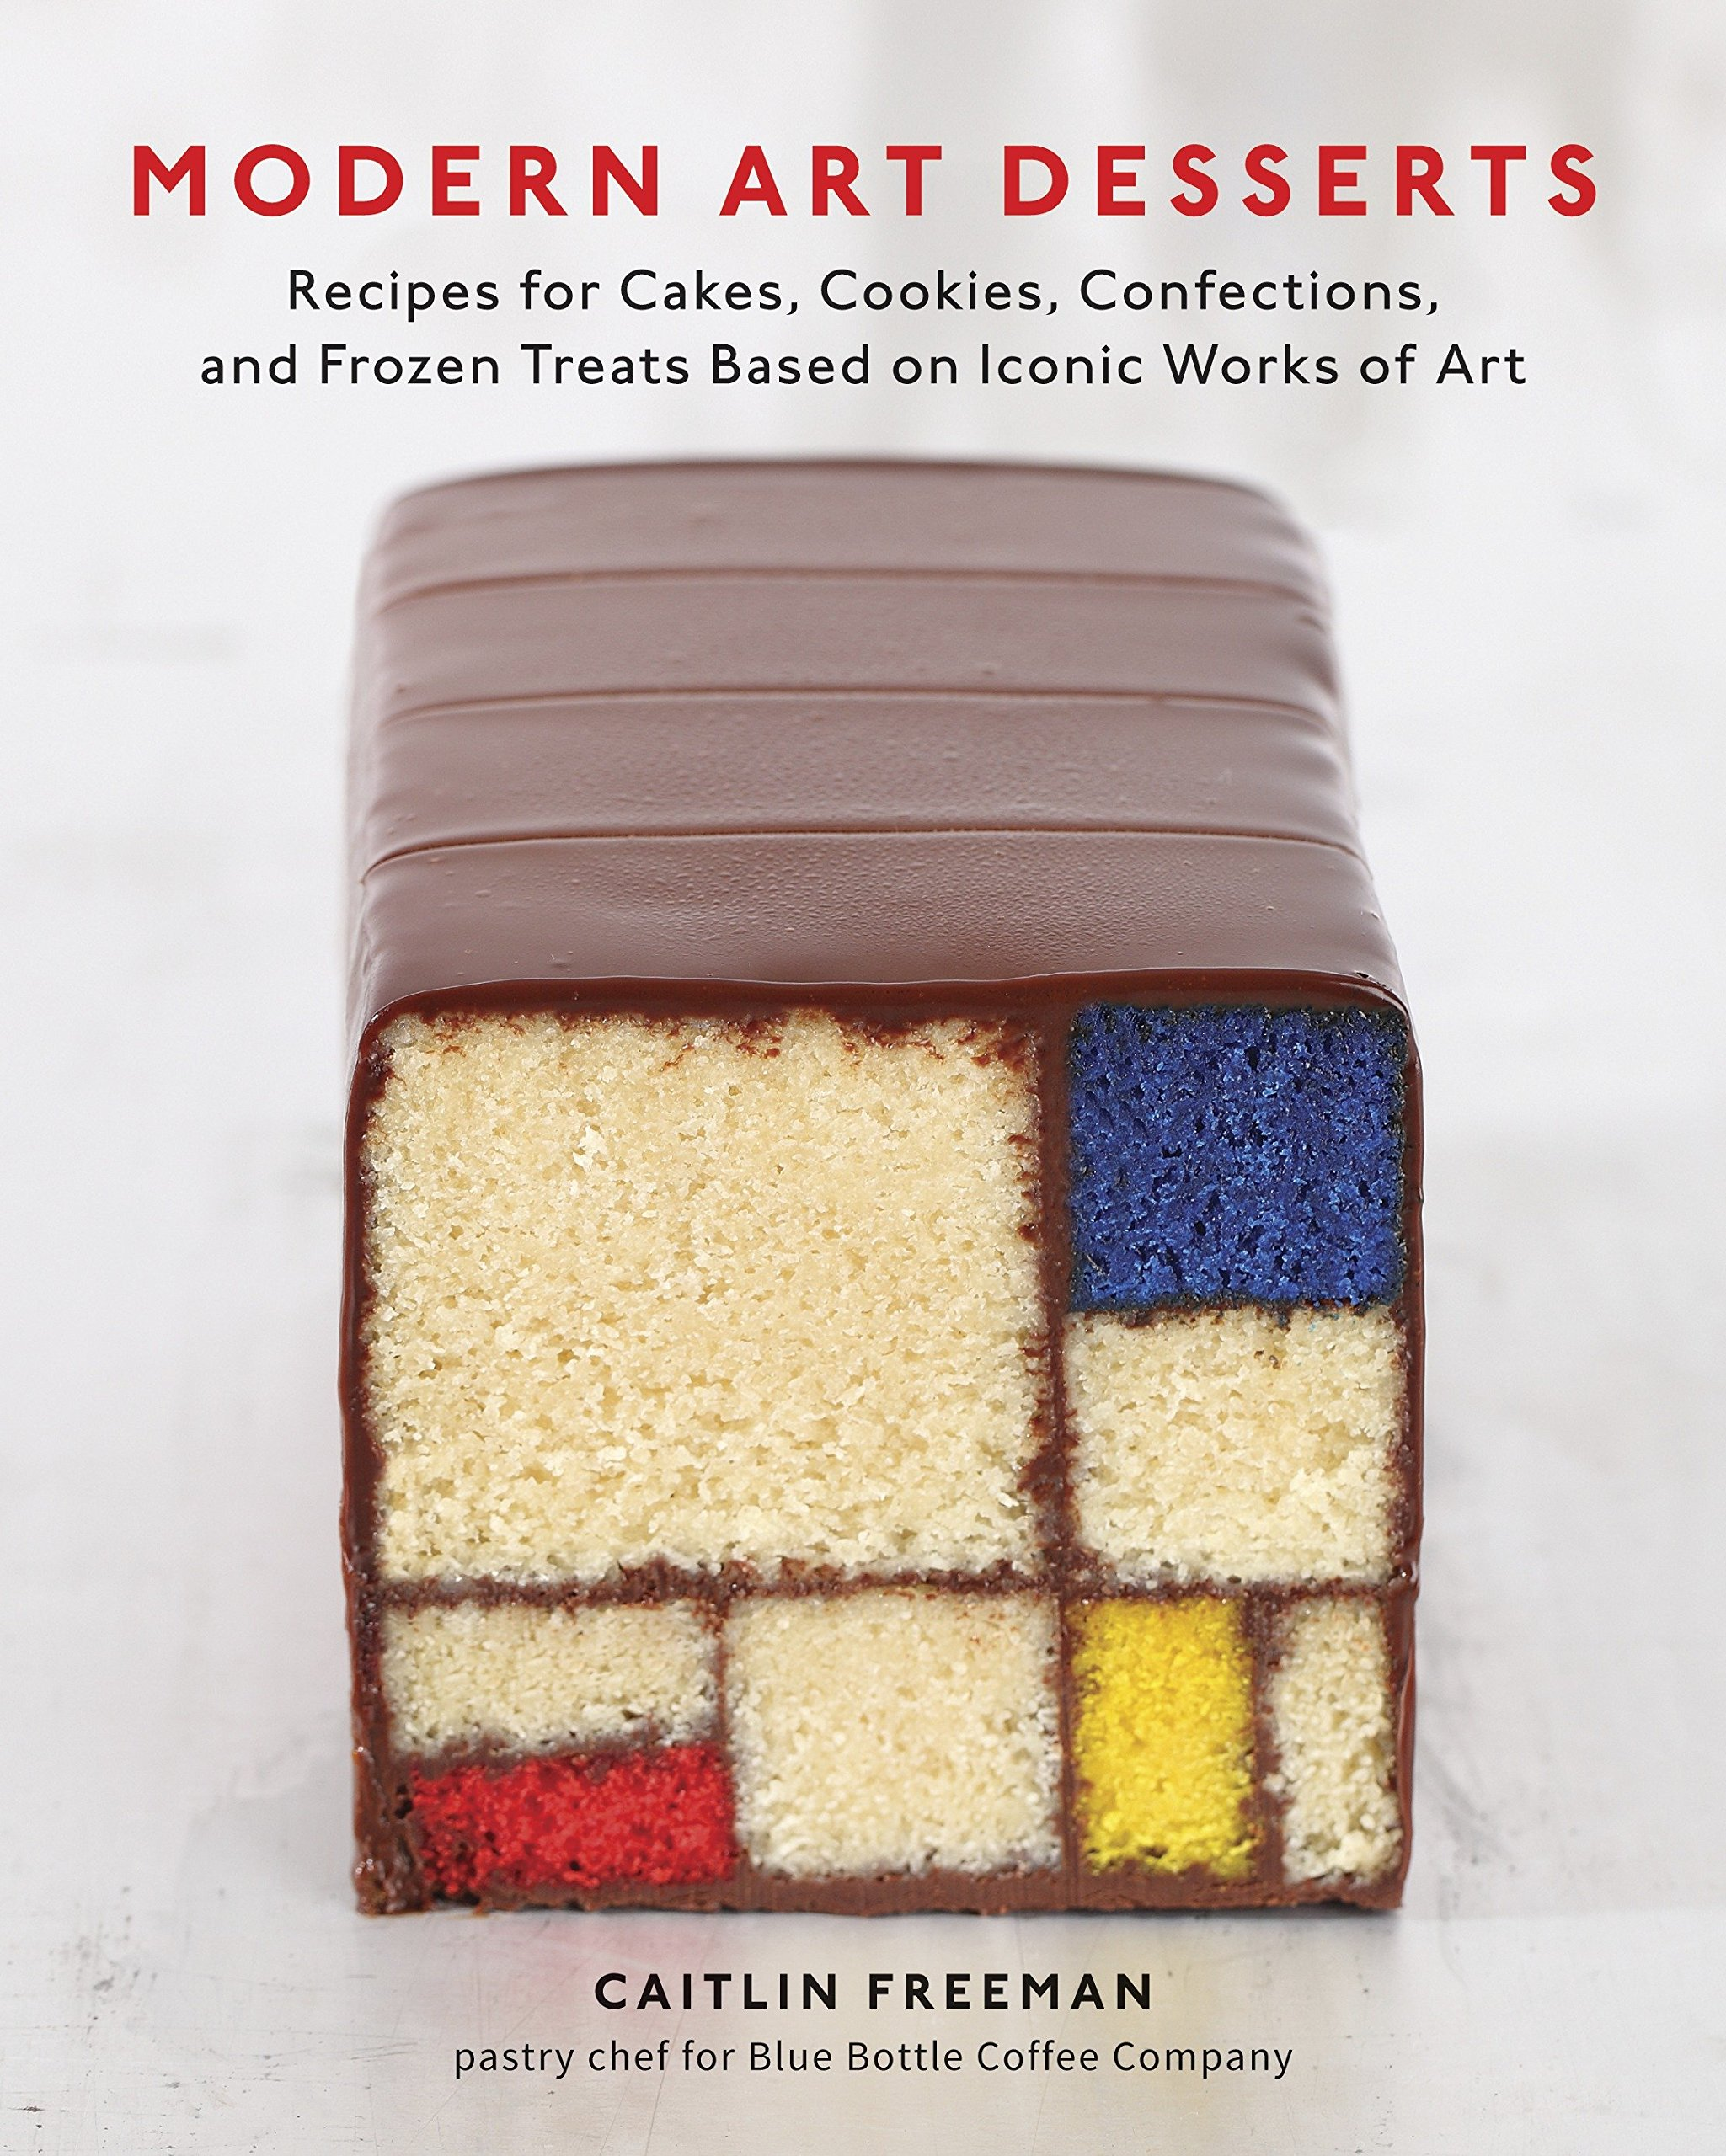 Modern Art Desserts  Recipes For Cakes Cookies Confections And Frozen Treats Based On Iconic Works Of Art  A Baking Book